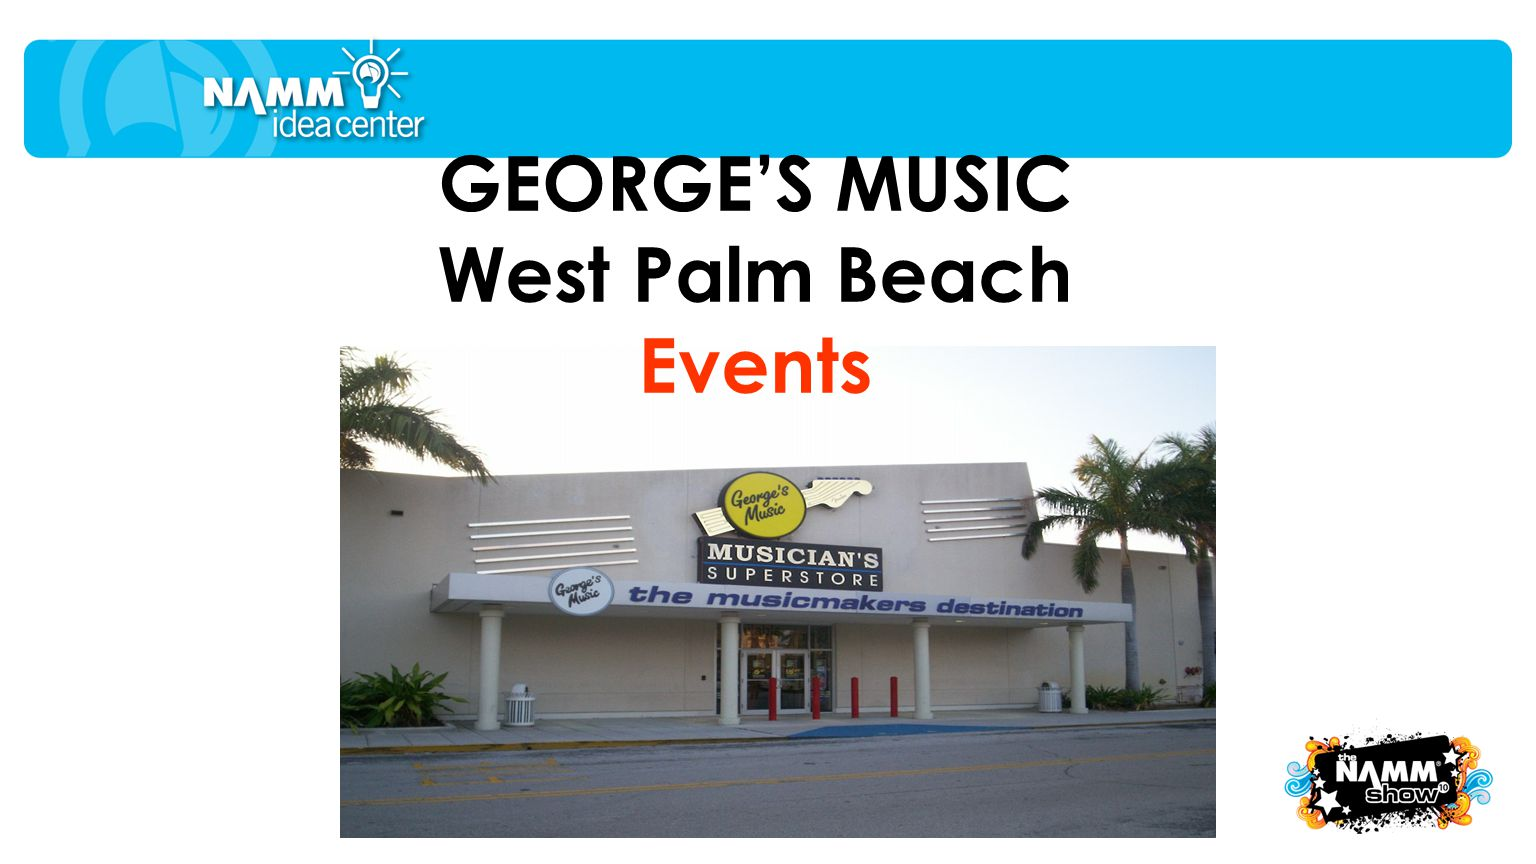 GEORGES MUSIC West Palm Beach Events